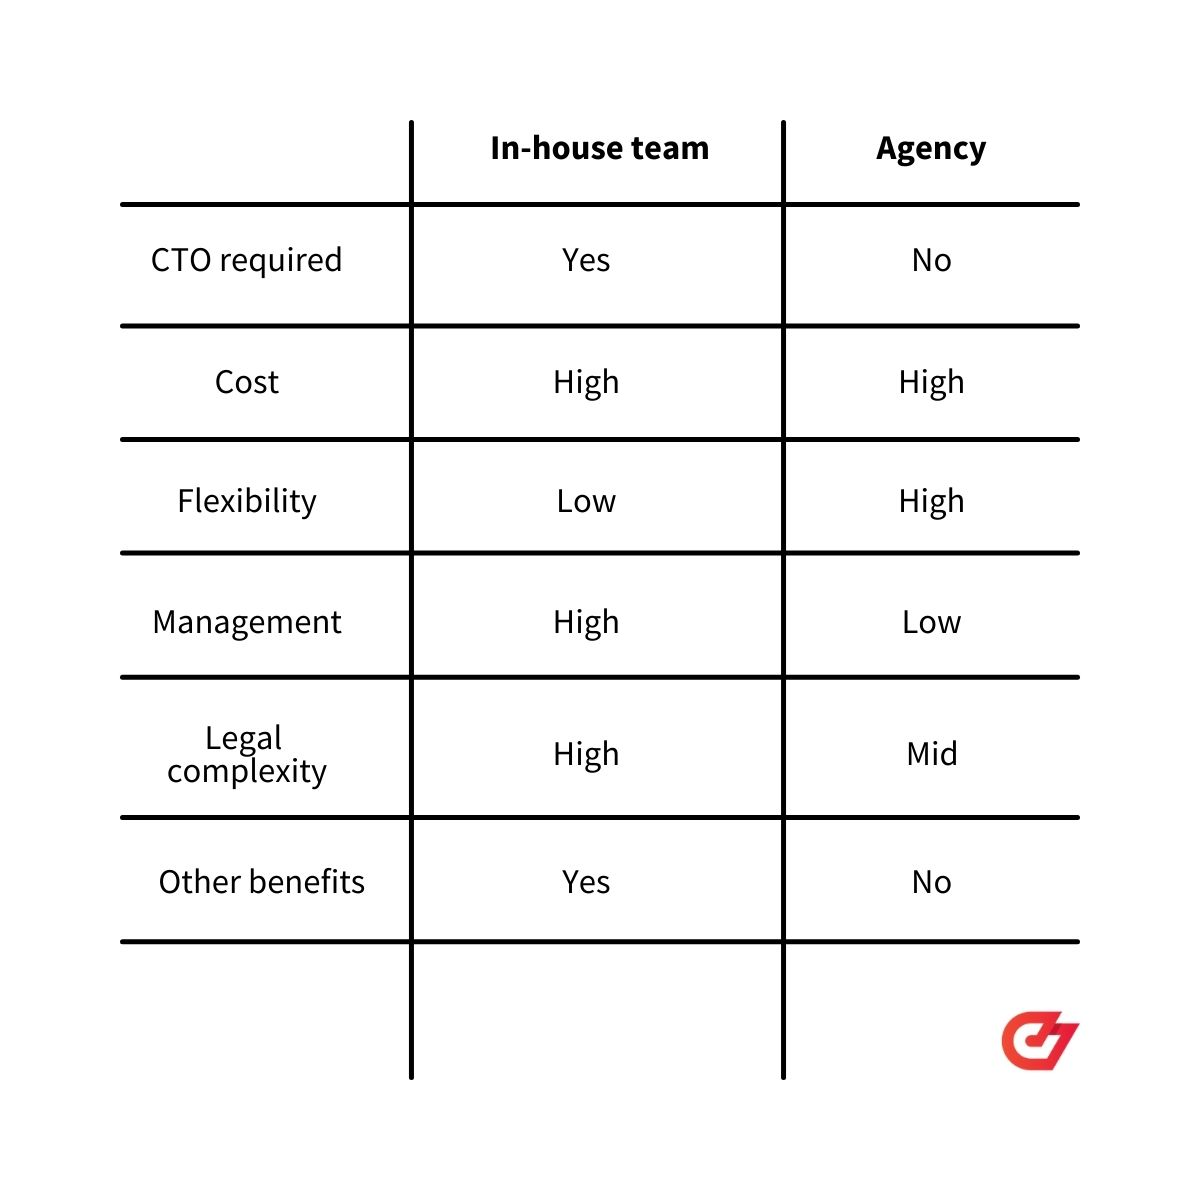 The pros and cons of hiring an agency vs. in-house developers